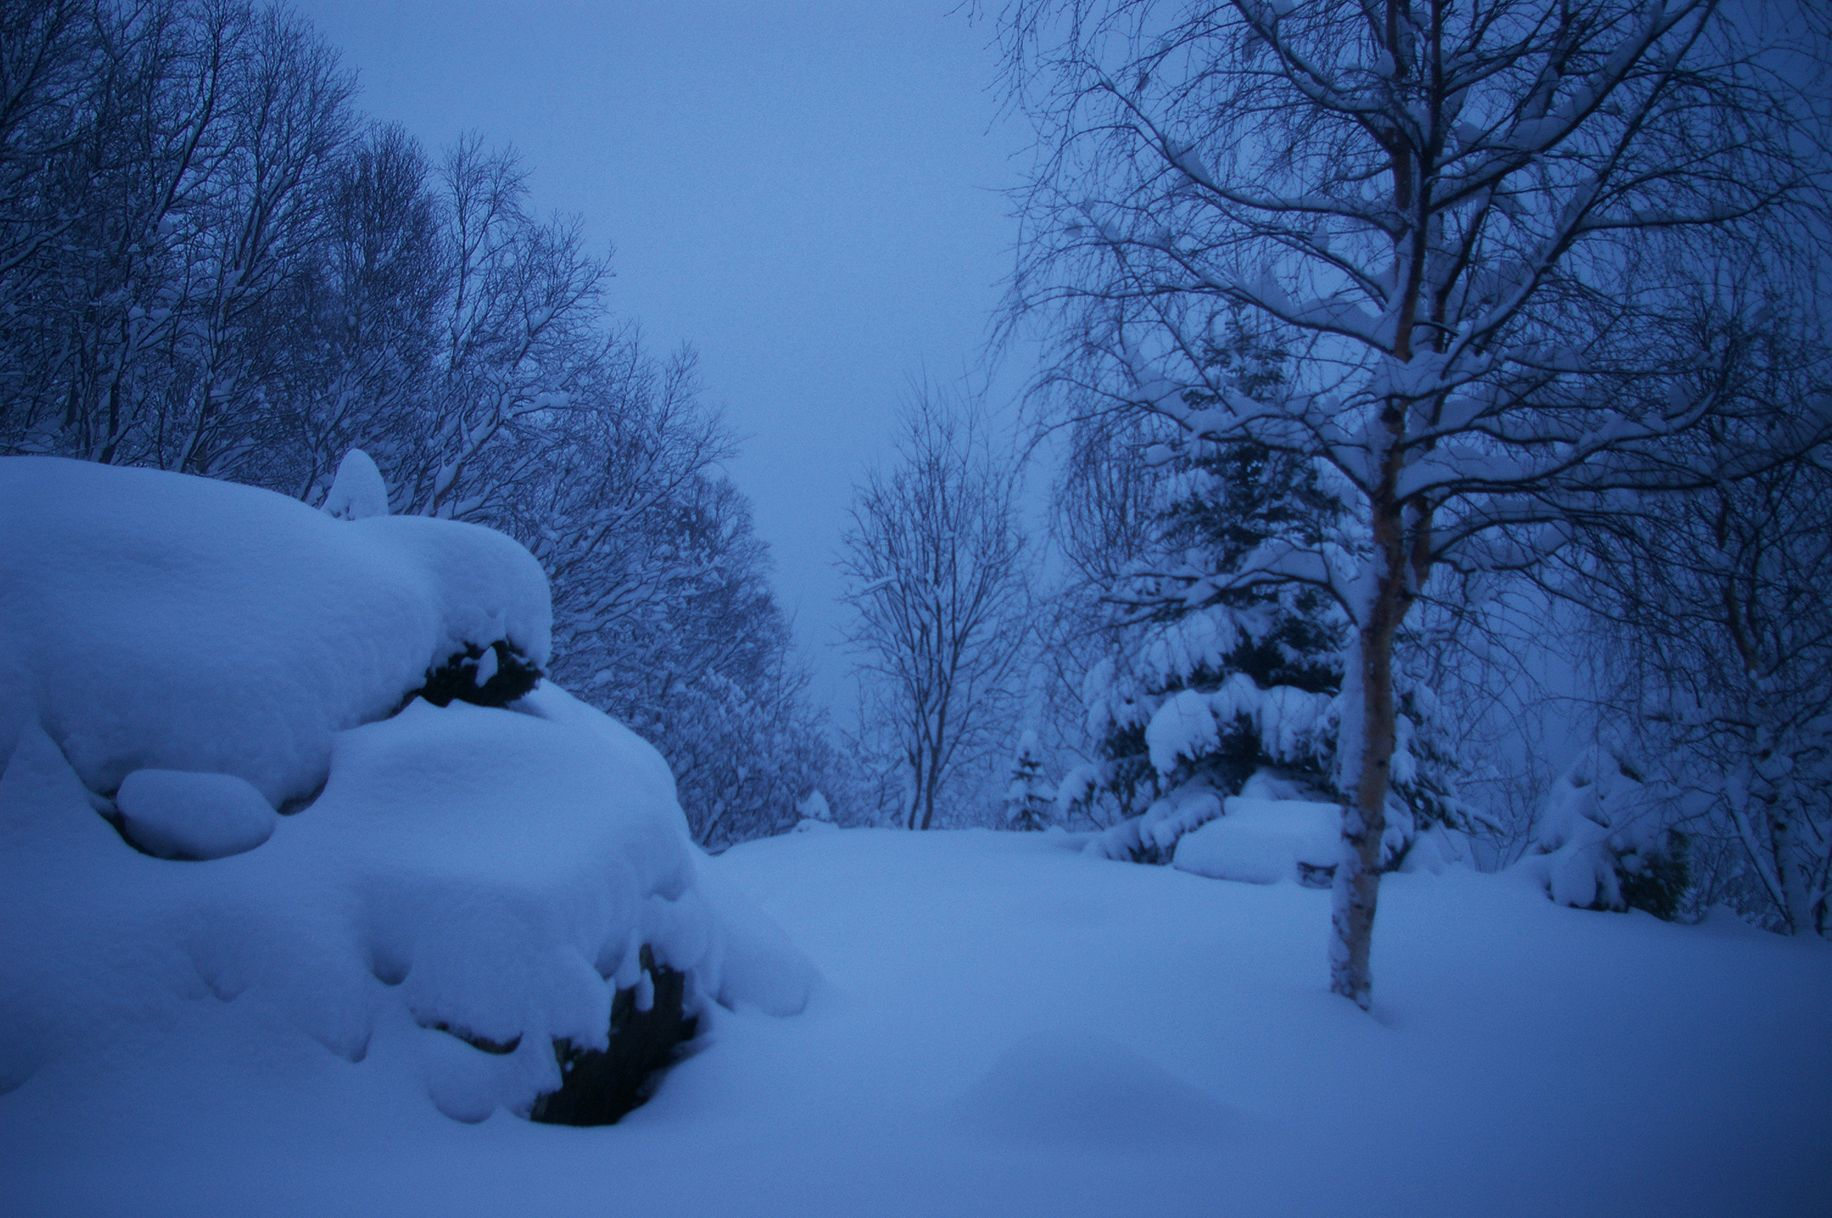 Blue noon. Photo taken at noon by the author in his garden in Tromsø, December 2006.